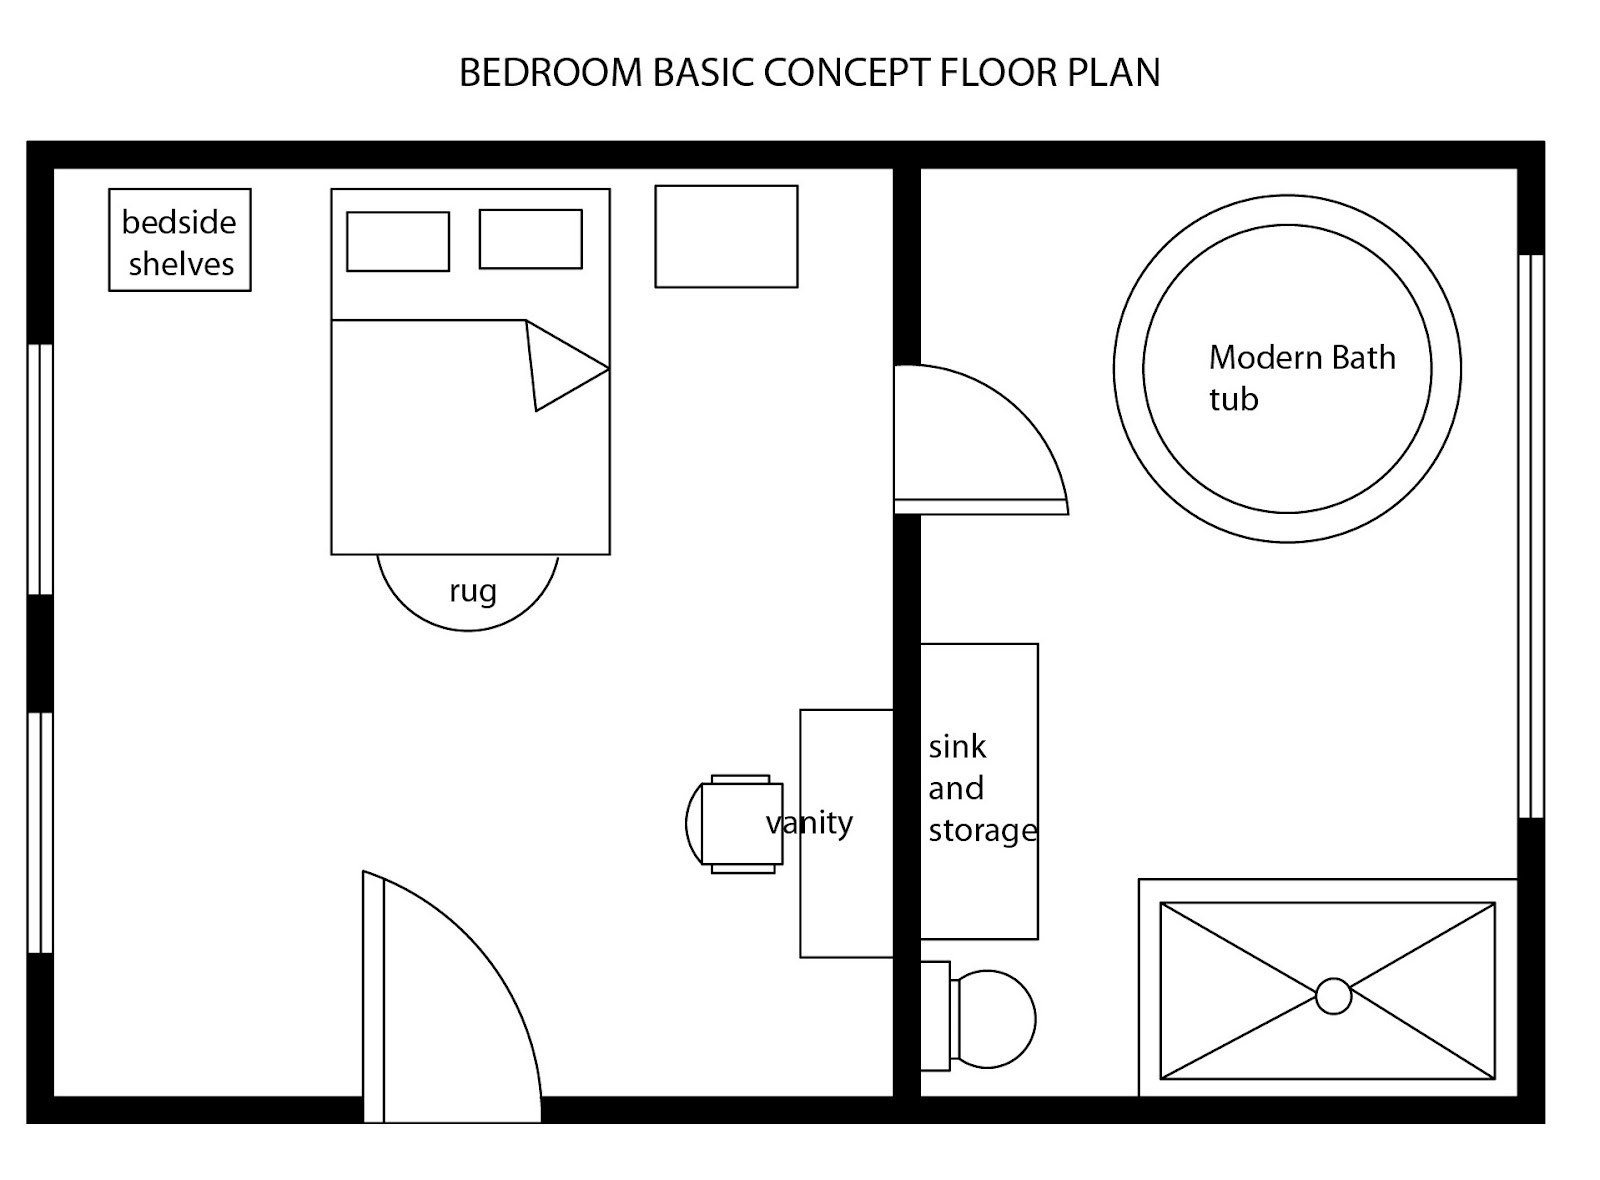 Interior design decor modern bedroom basic floor plan Bedroom layout design